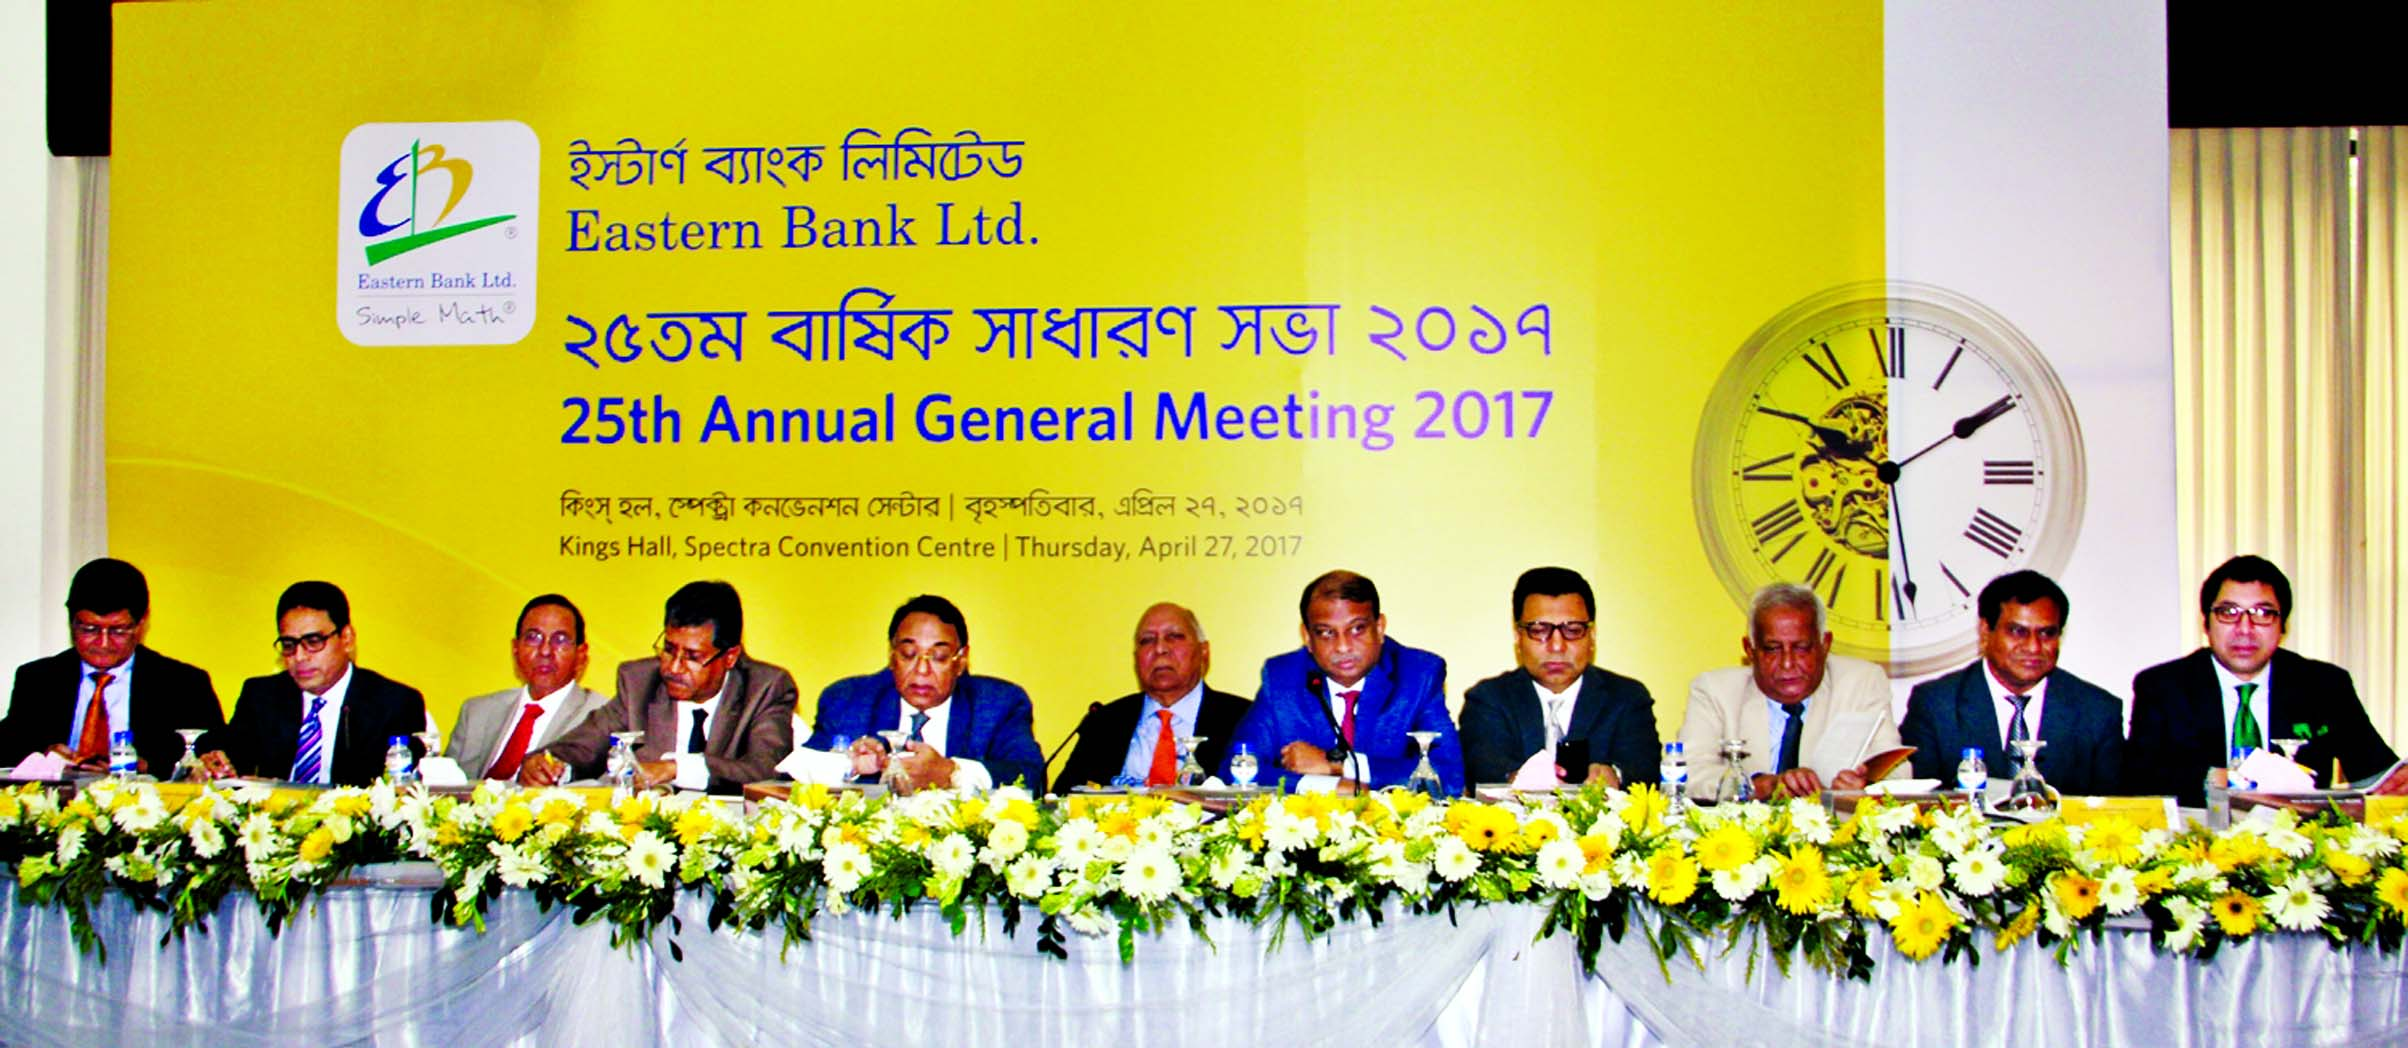 M Ghaziul Haque, Chairman of Board of Directors of EBL, presiding over its 25th AGM at a convention centre in the city recently. The AGM declares 20pc Cash and 5pc Stock Dividend for the year ended on 31 December 2016. Mir Nasir Hossain, AM Shaukat Ali, Md Showkat Ali Chowdhury, Anis Ahmed, Meah Mohammed Abdur Rahim, Mufakkharul Islam Khasru, Directors and Ali Reza Iftekhar, Managing Director were present among others.